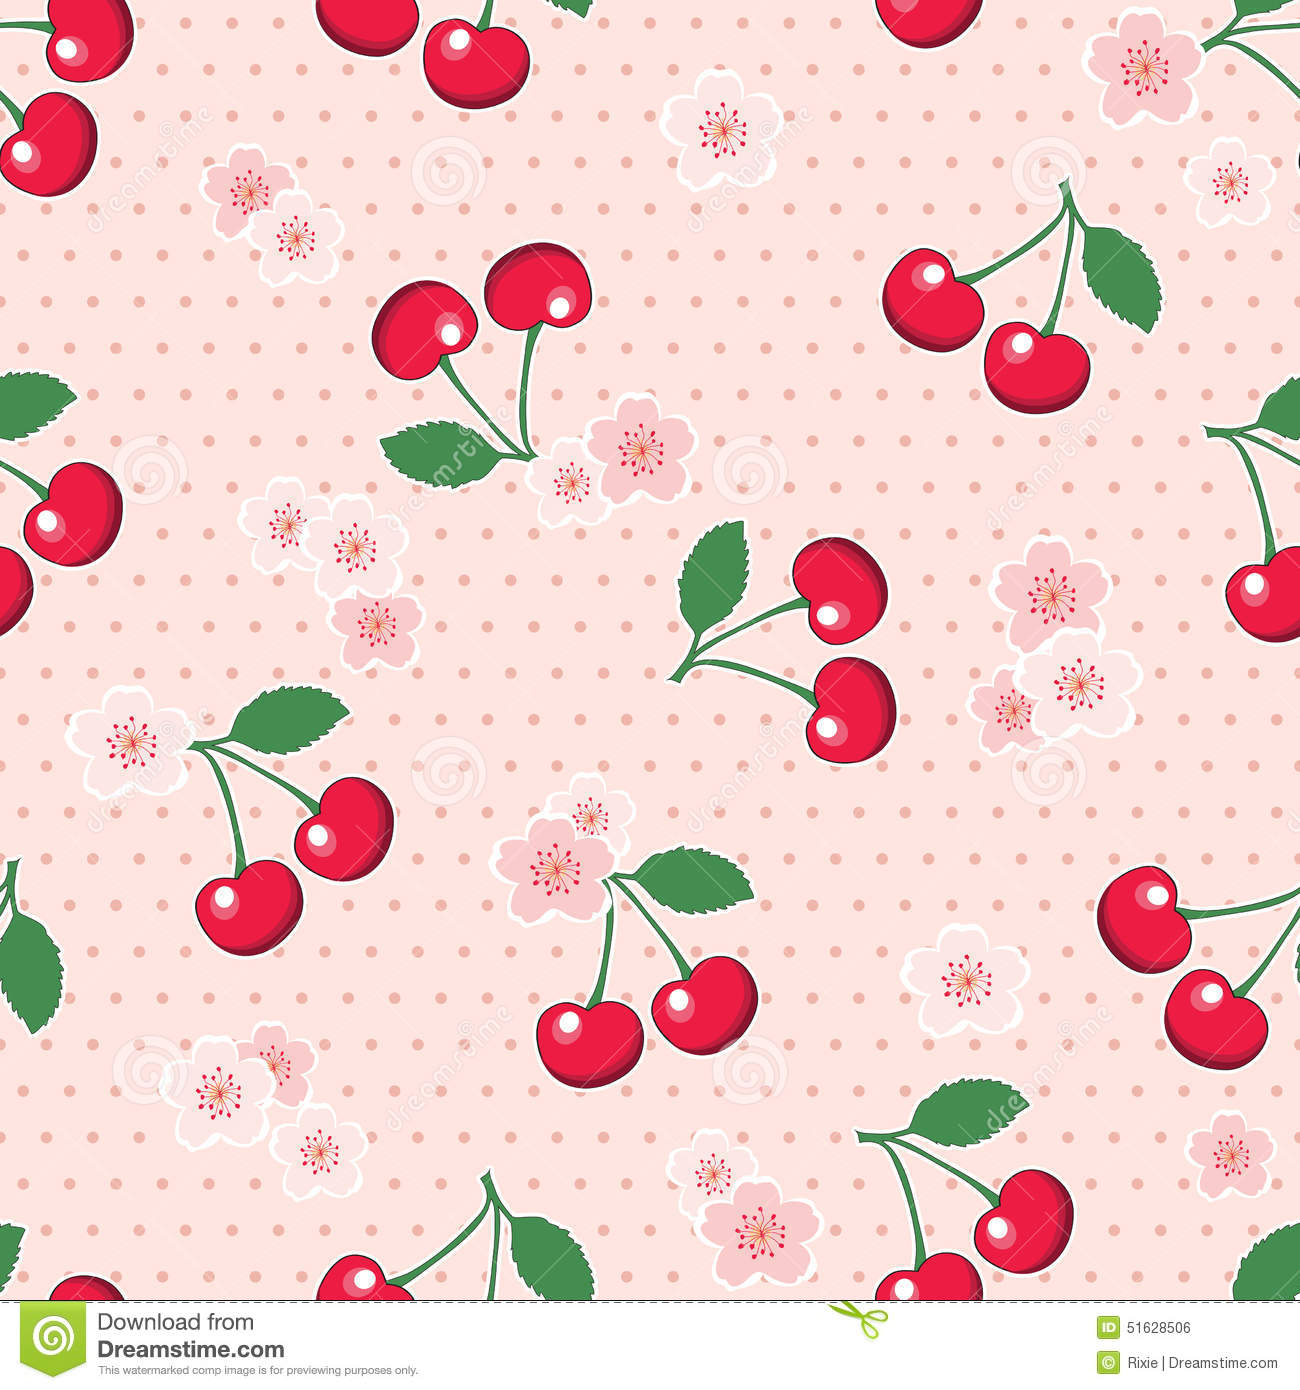 Seamless Cherries And Blossom On Polka Dot Background Stock Vector - Image: 5...